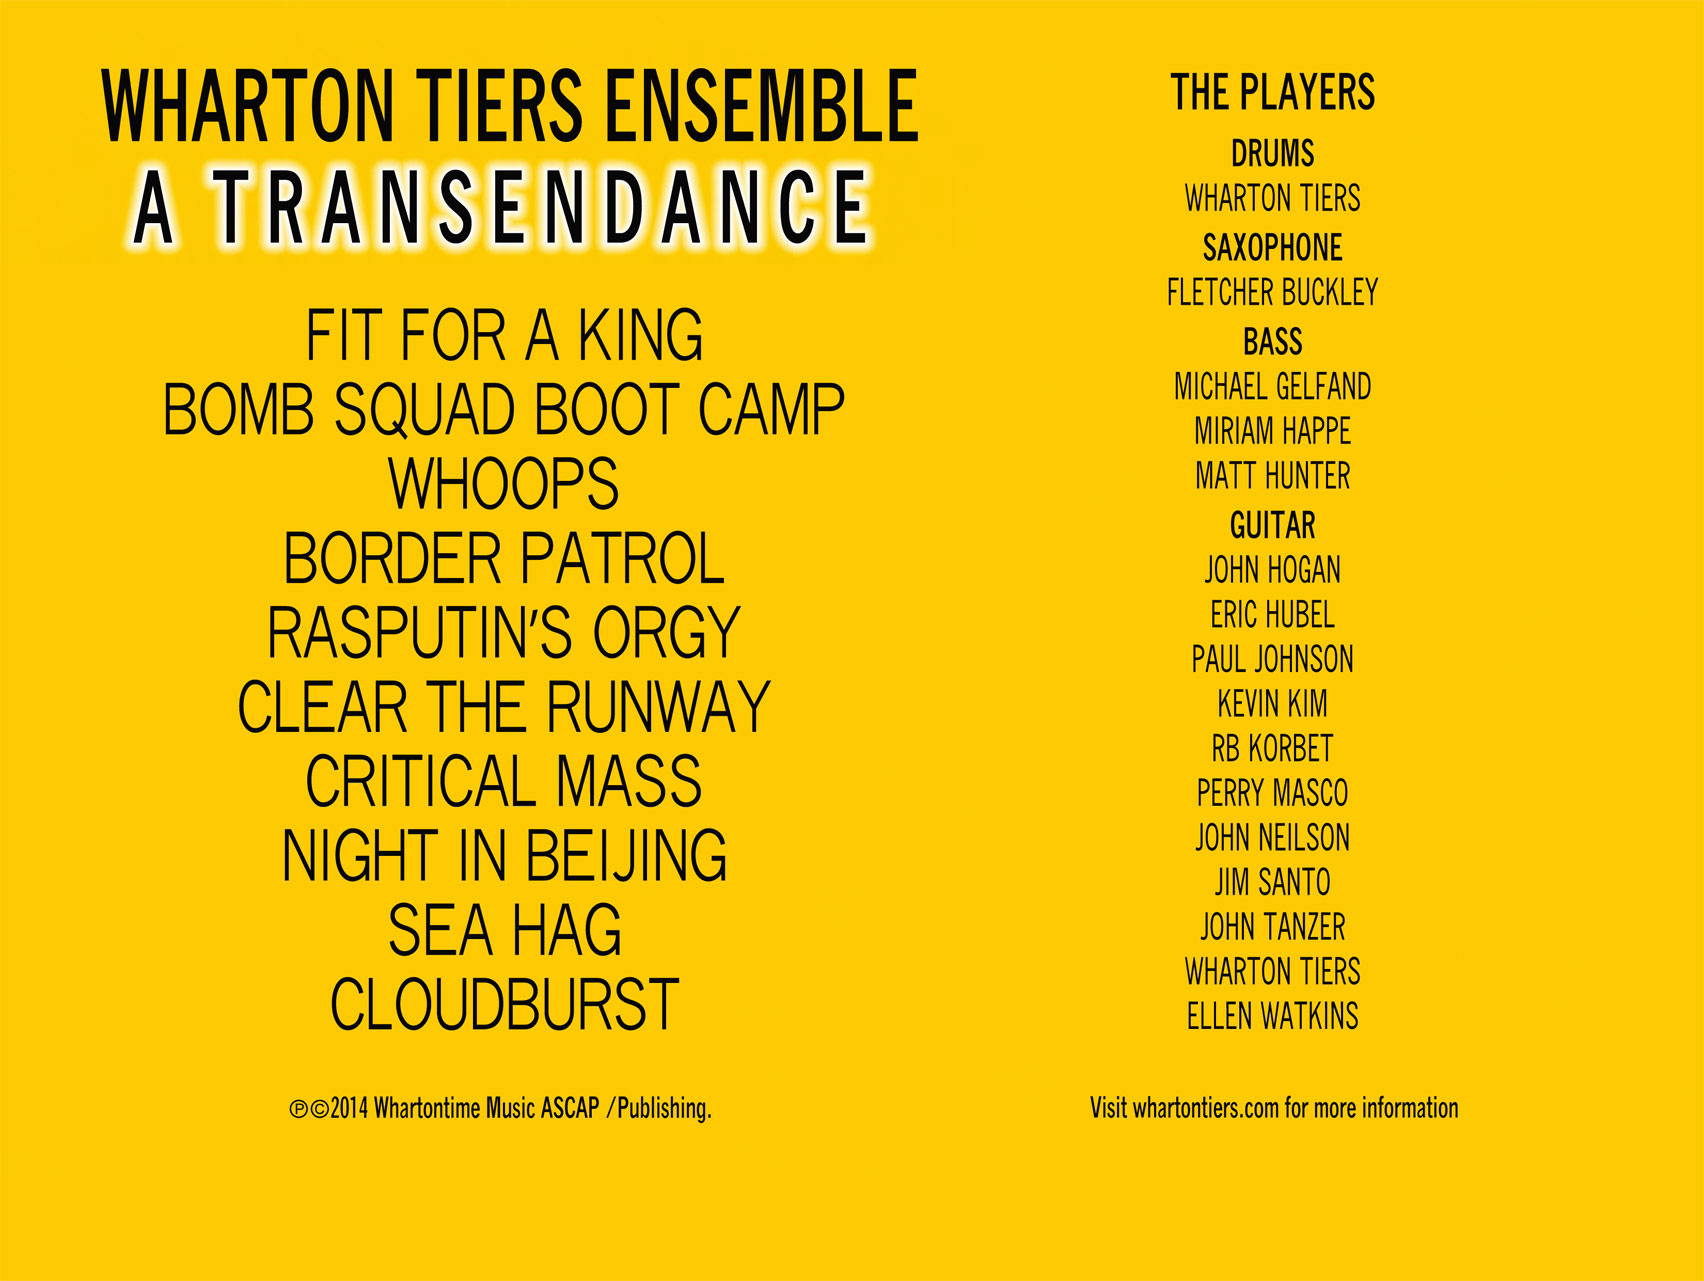 Wharton Tiers Ensemble, A Transendance digital booklet